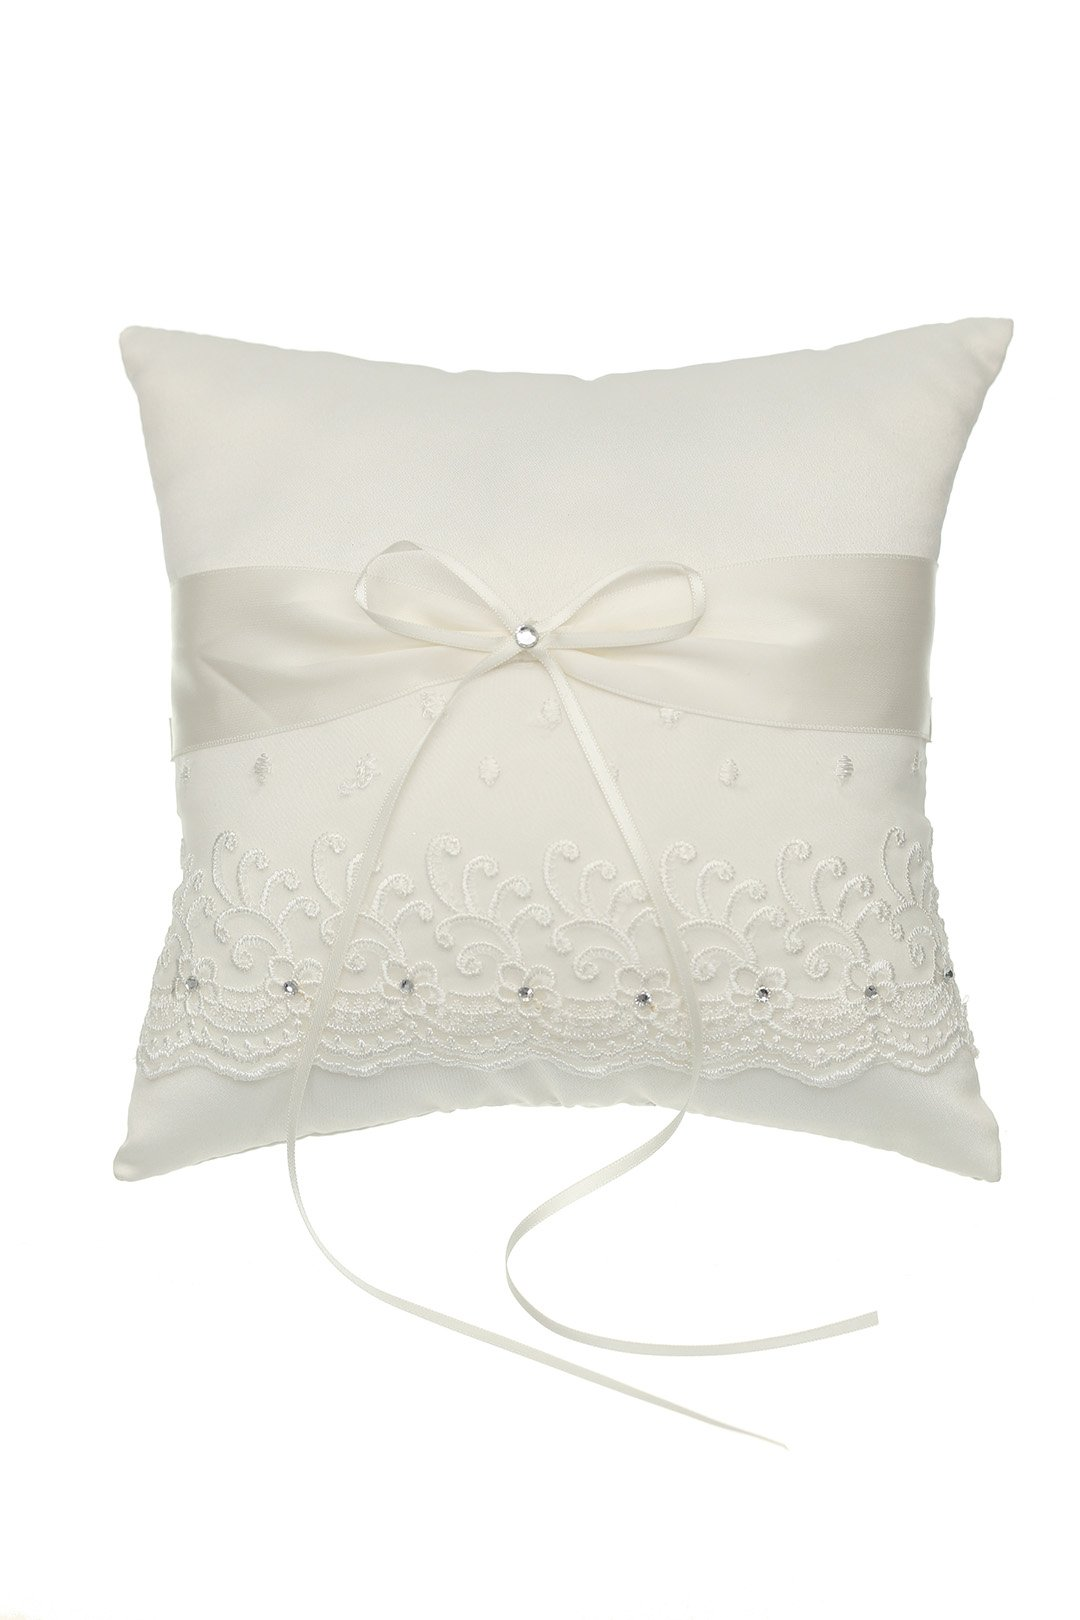 SAMKY Venus Jewelry Embroided Flower Lace Crystal Wedding Ring Bearer Pillow 7 Inch x 7 Inch - Ivory RP008I